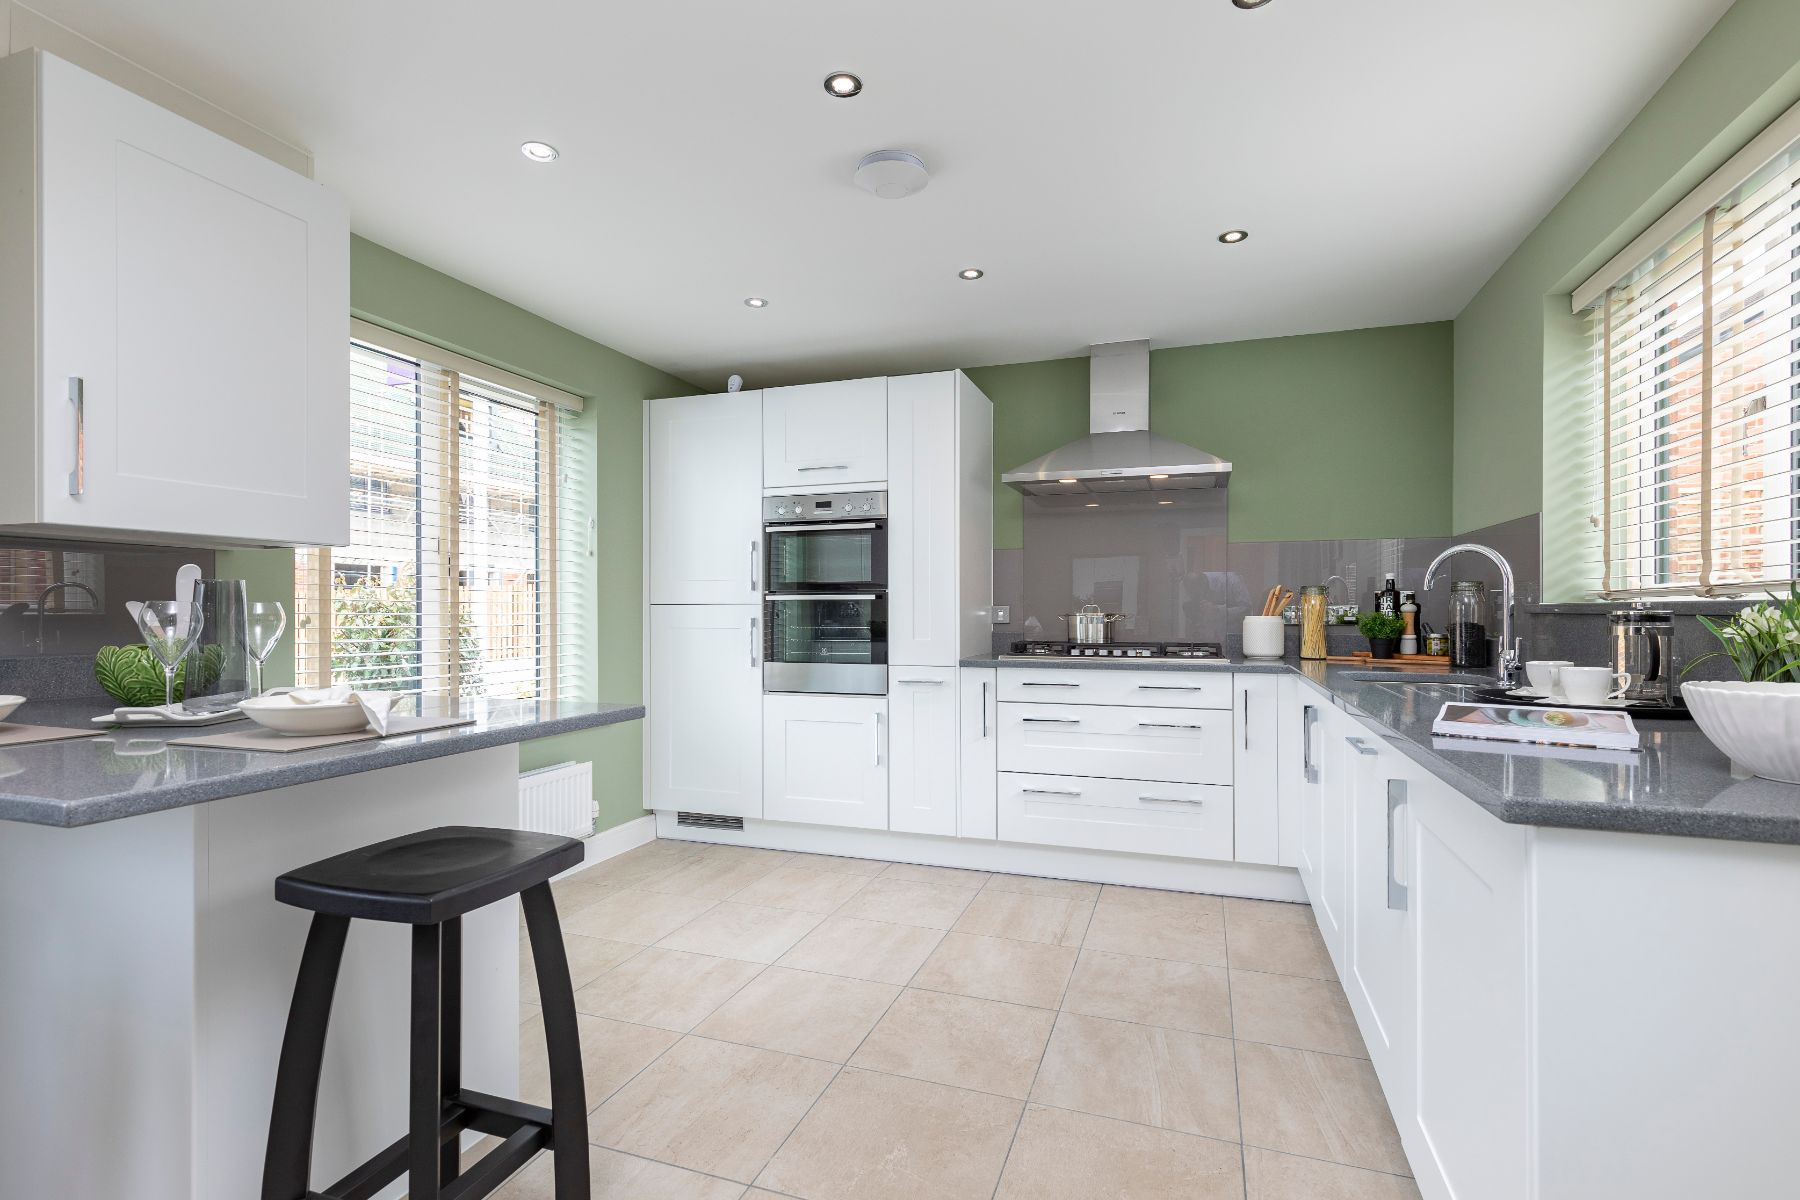 TW Exeter - Mayfield Gardens - Waysdale example kitchen